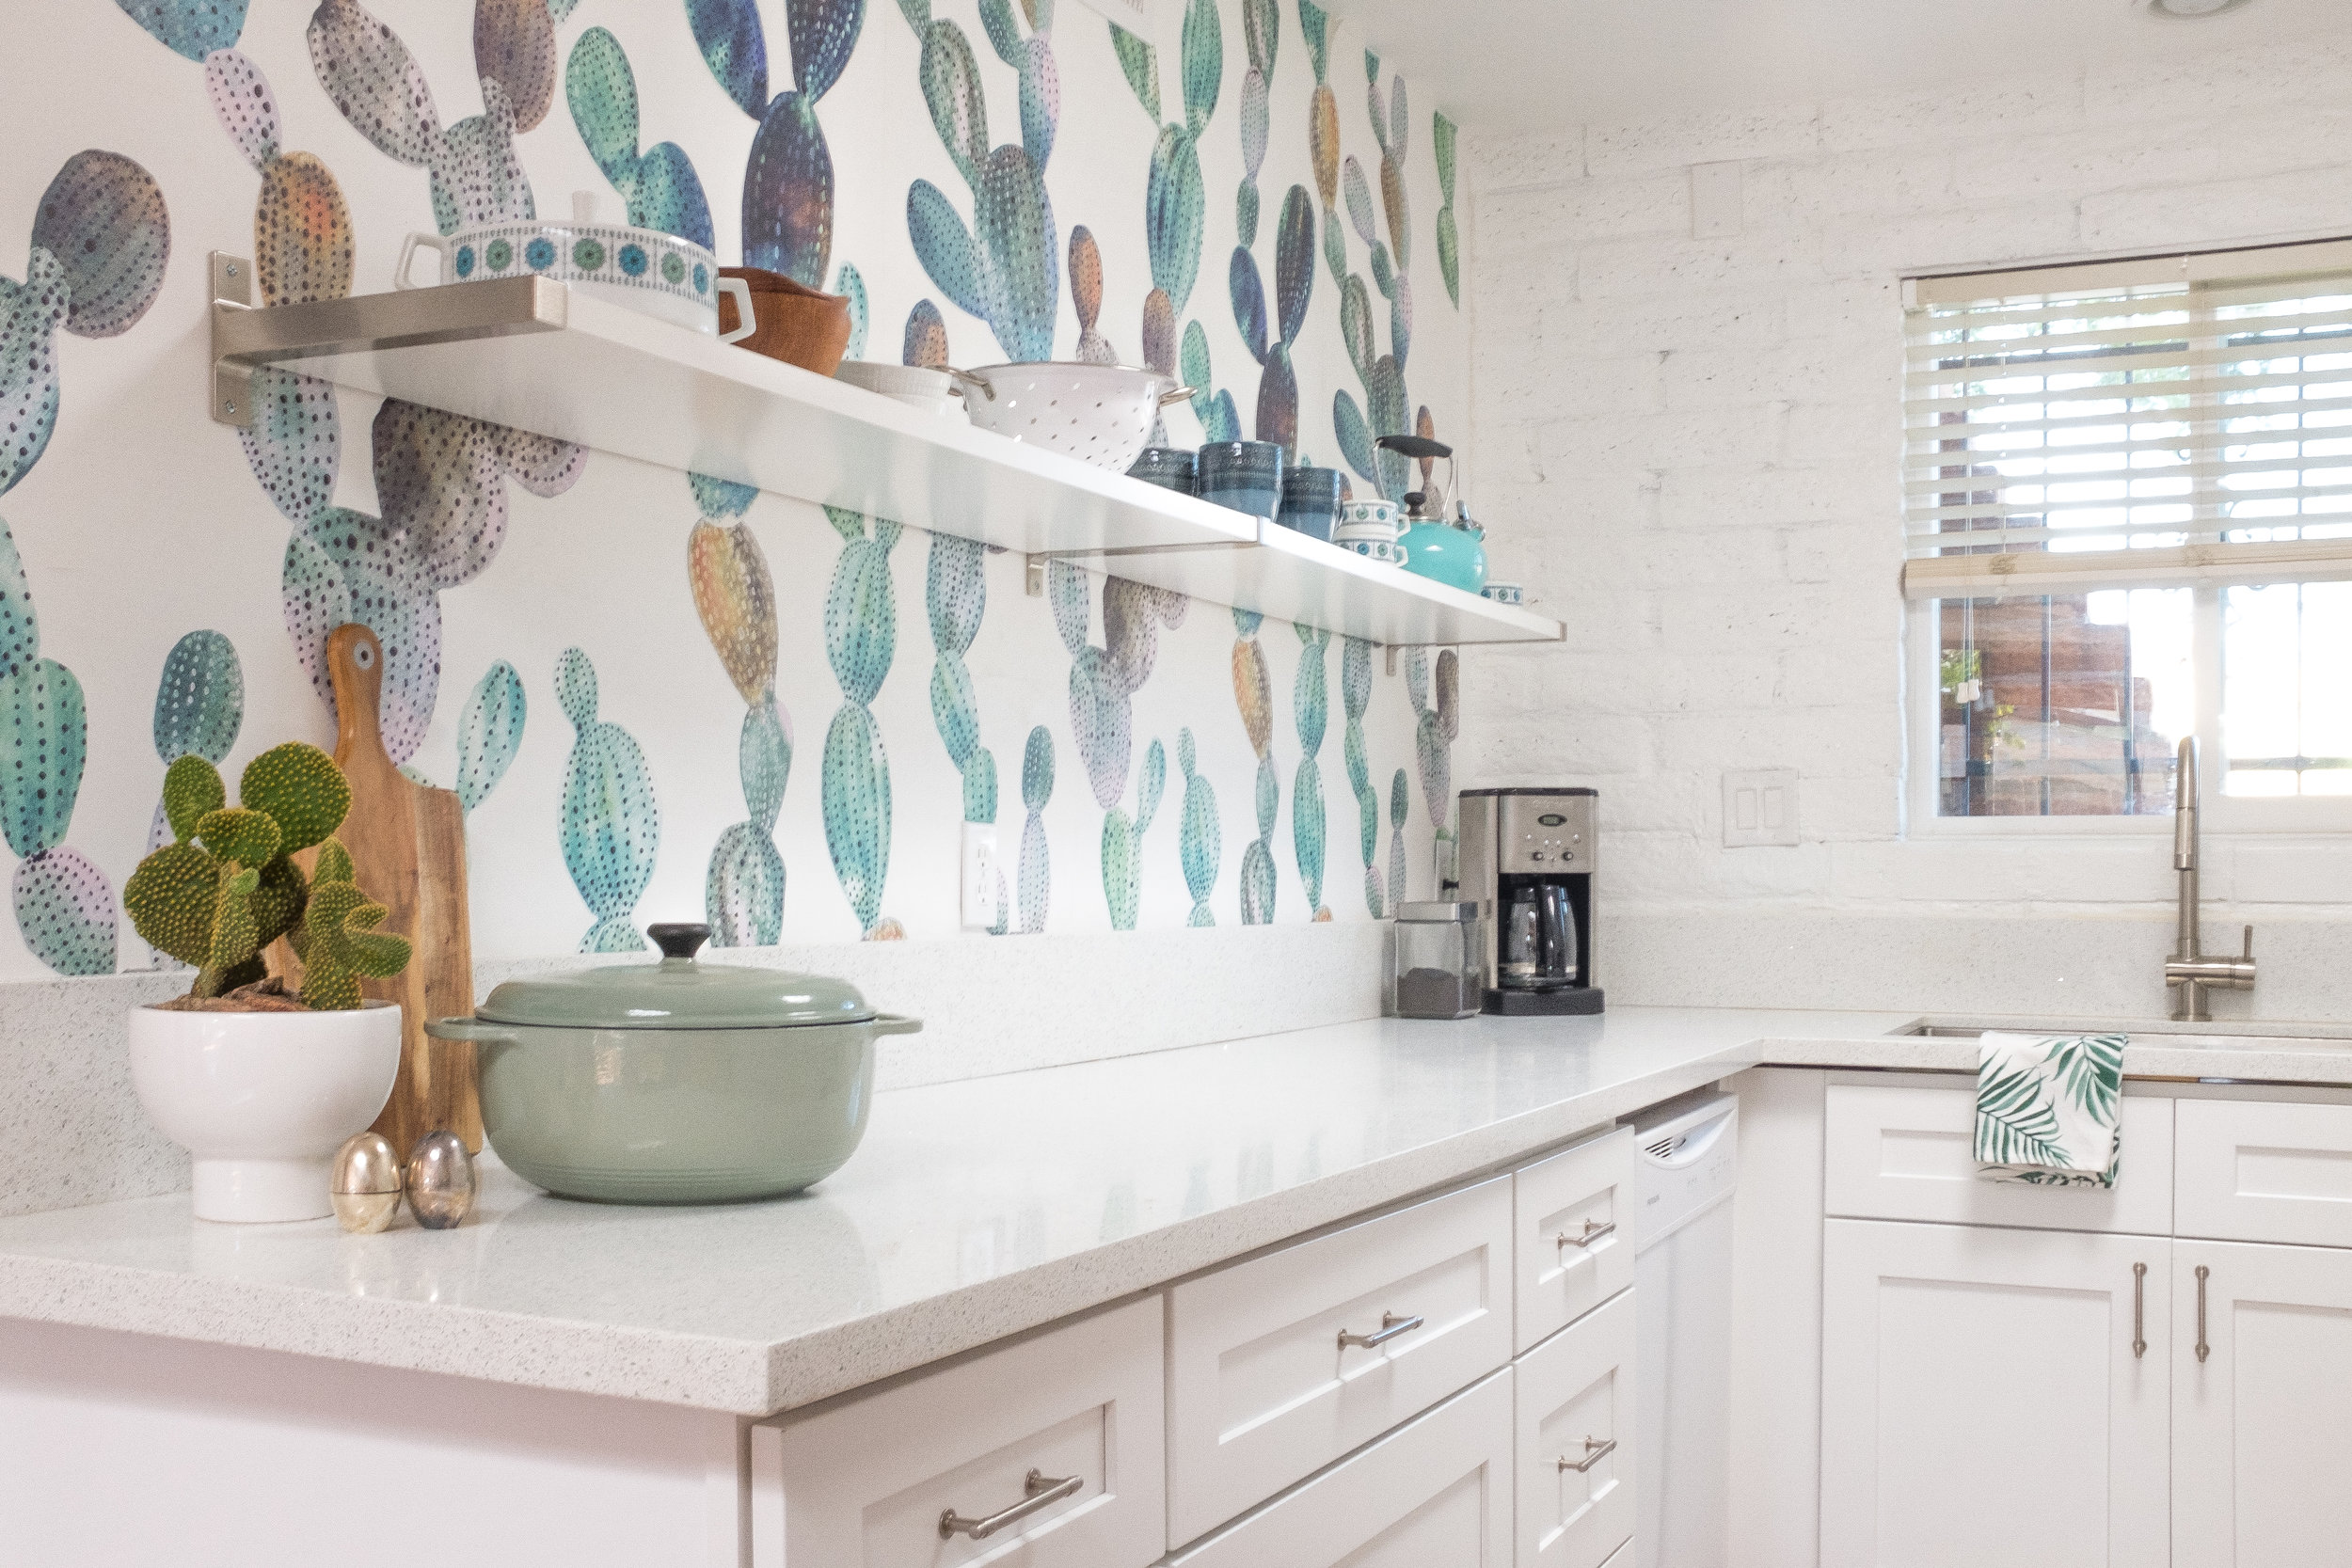 Cozy Cactus Wallpaper Kitchen with Ikea floating shelves, quartz countertop and white shaker cabinets